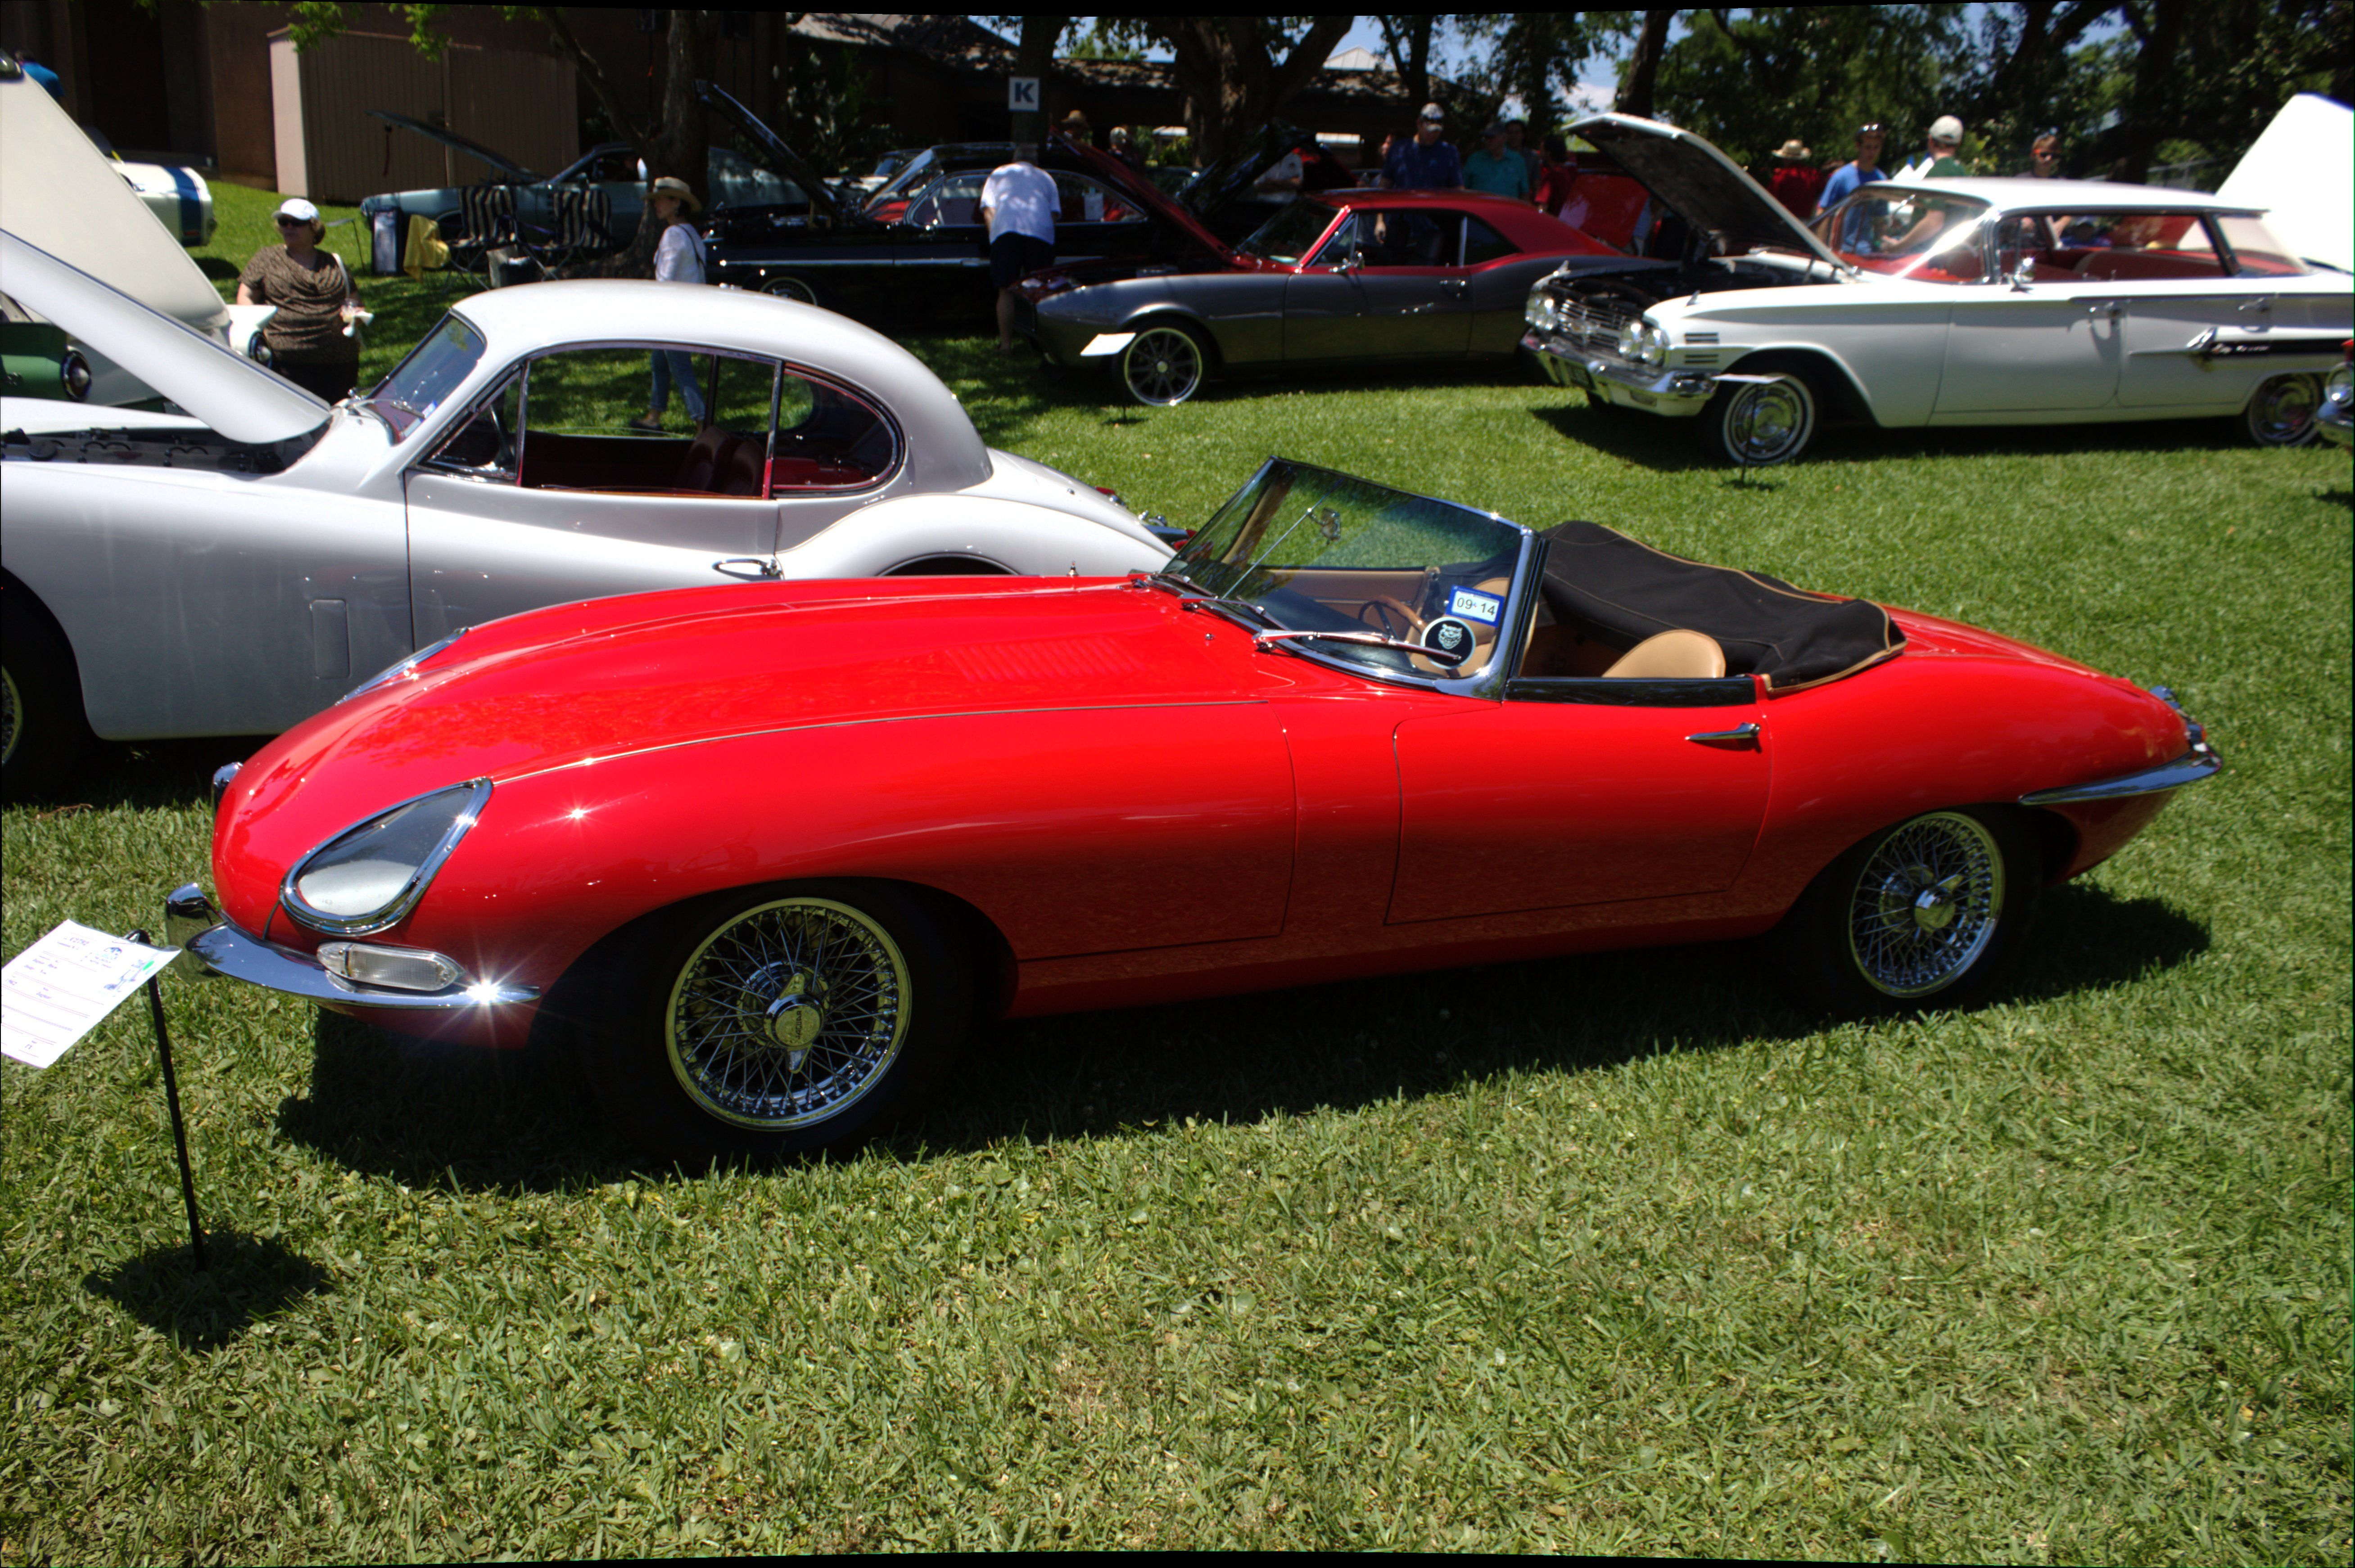 1962 jaguar xle roadster series 1 owned by peter harth of